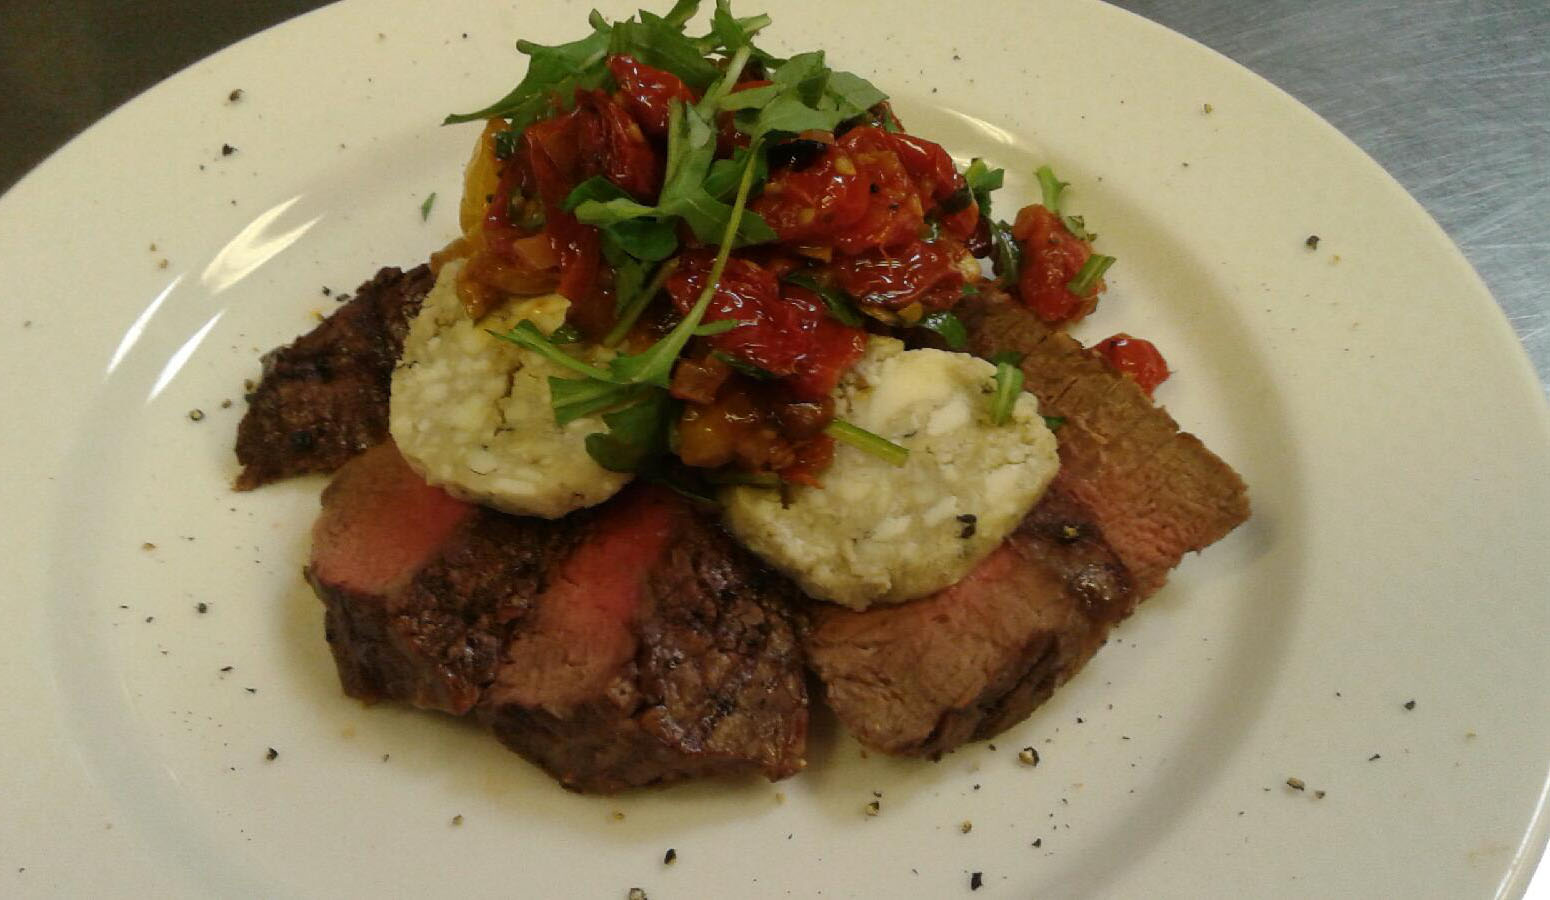 Grilled Steak with Cherry Tomato Relish and Gorgonzola Butter